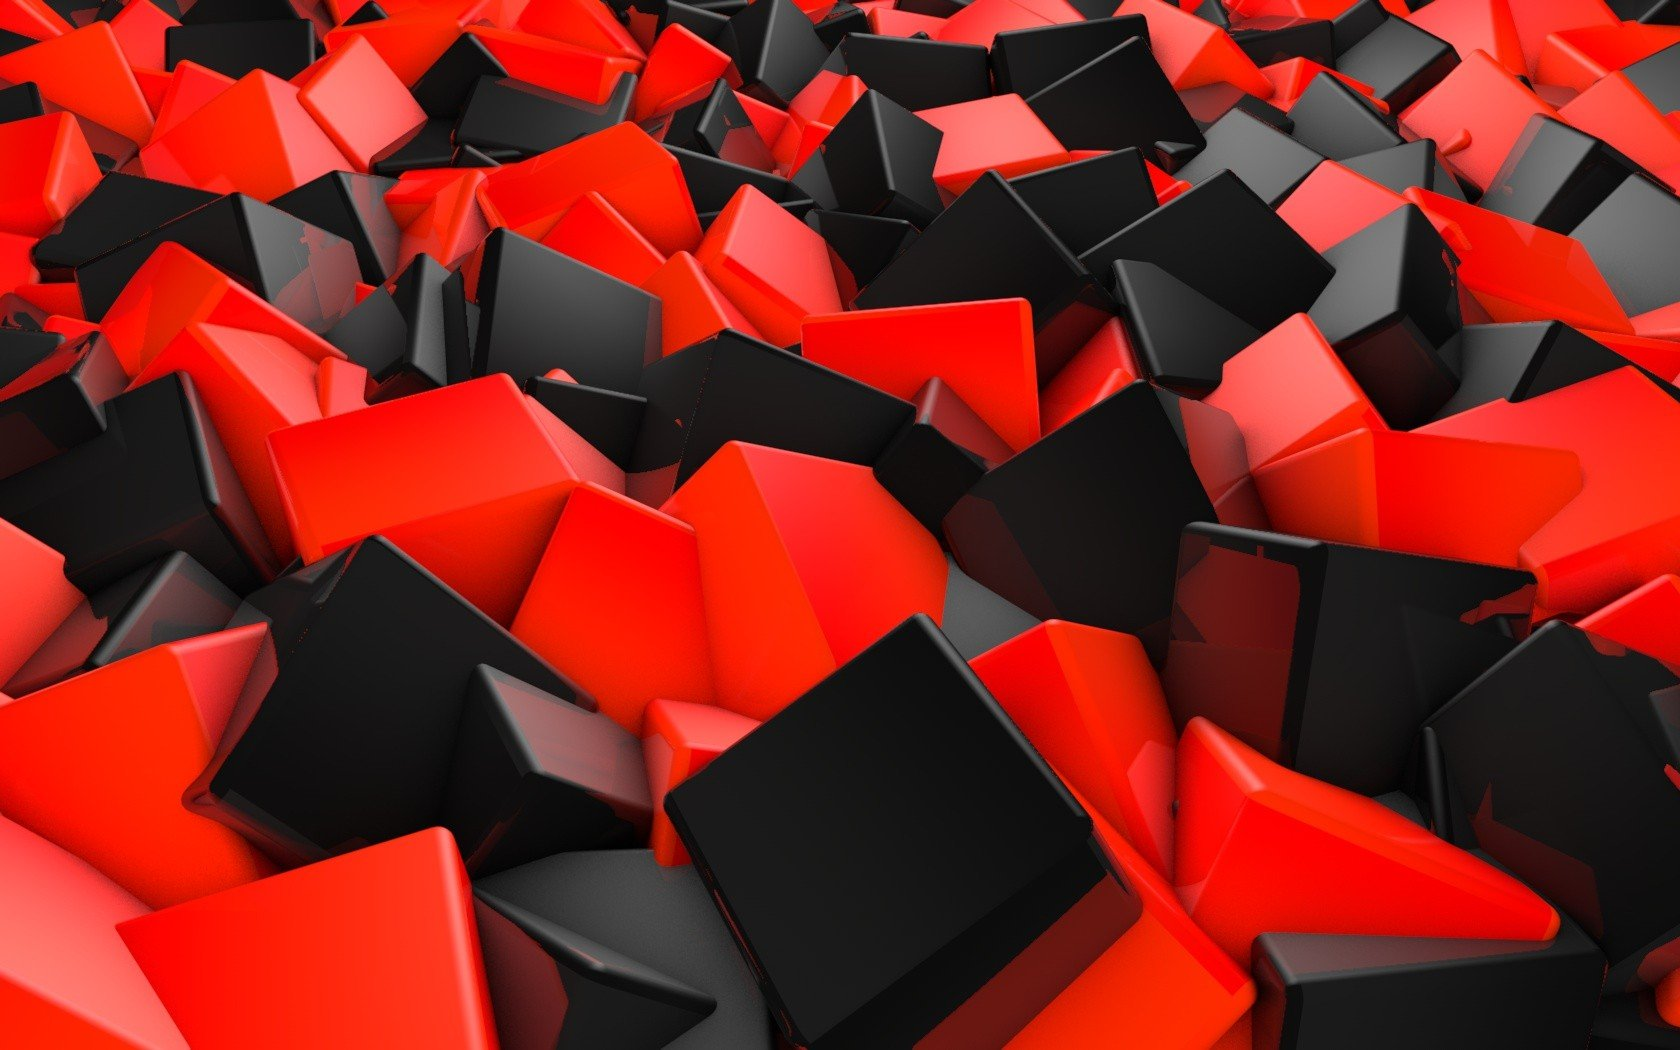 Black And Red Abstract Wallpaper 2628 Hd Wallpapers in Abstract 1680x1050